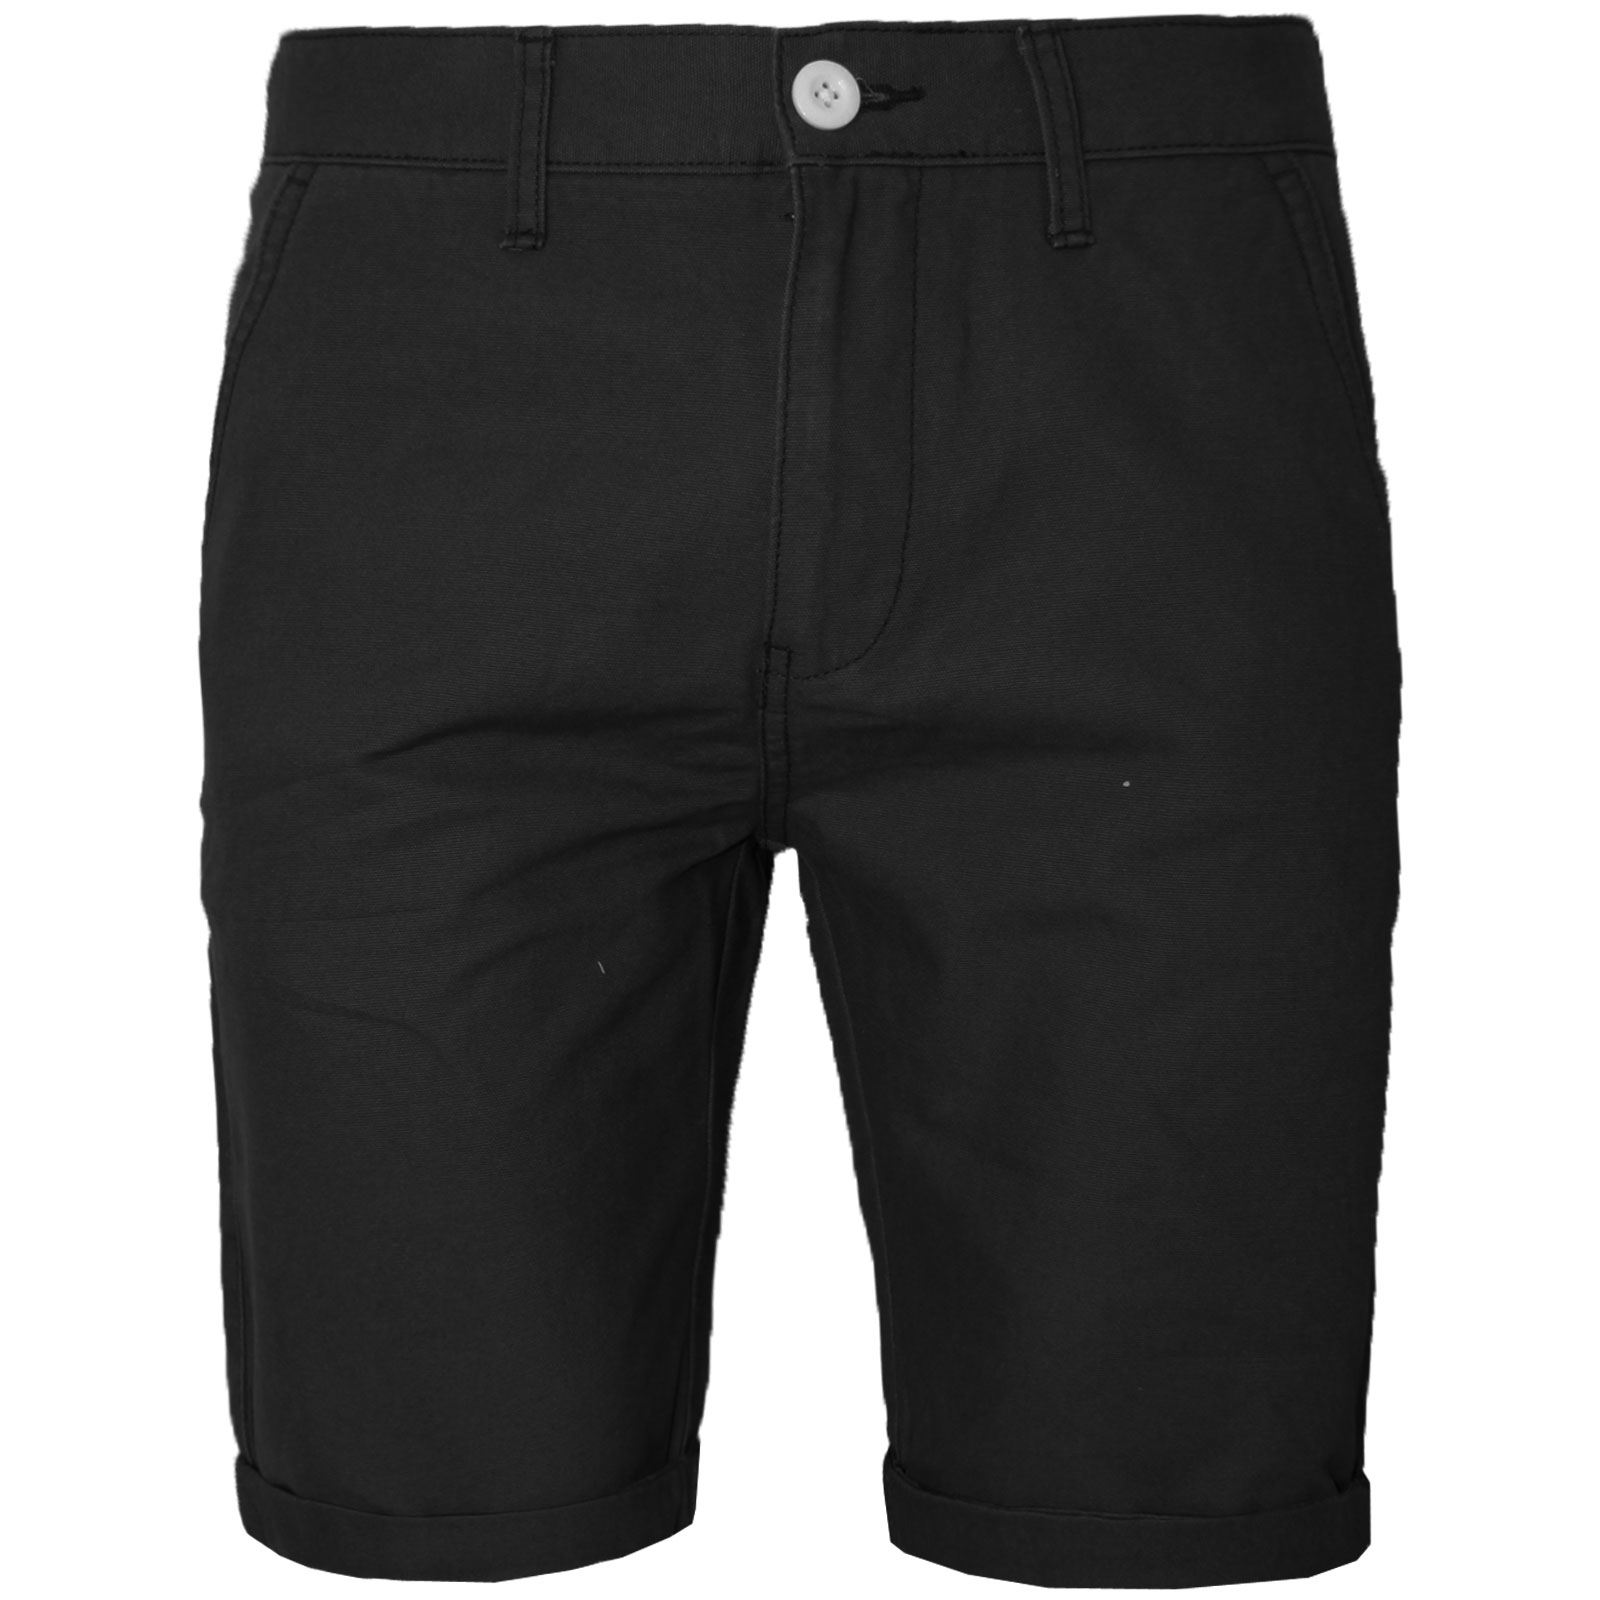 MENS CHINO SHORTS ROLL UP BOTTOMS SUMMER COTTON SHORTS HALF PANTS ...